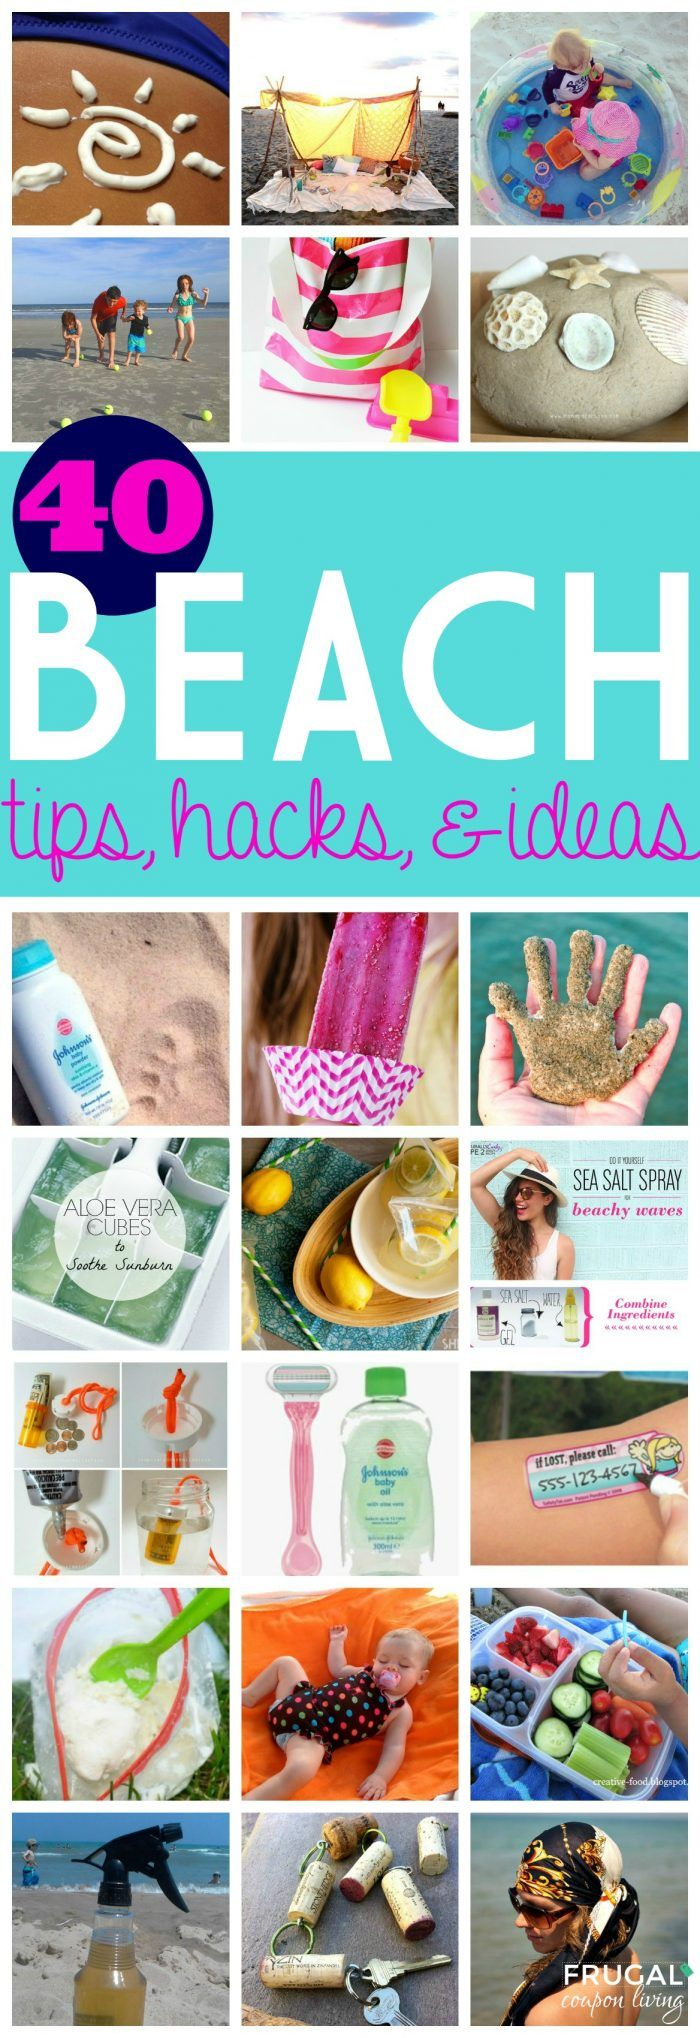 40 Beach Tips and Tricks - DIY for your beach vacation. Follow some of these crafts, tips, and tricks to make your visit to the sand easier.